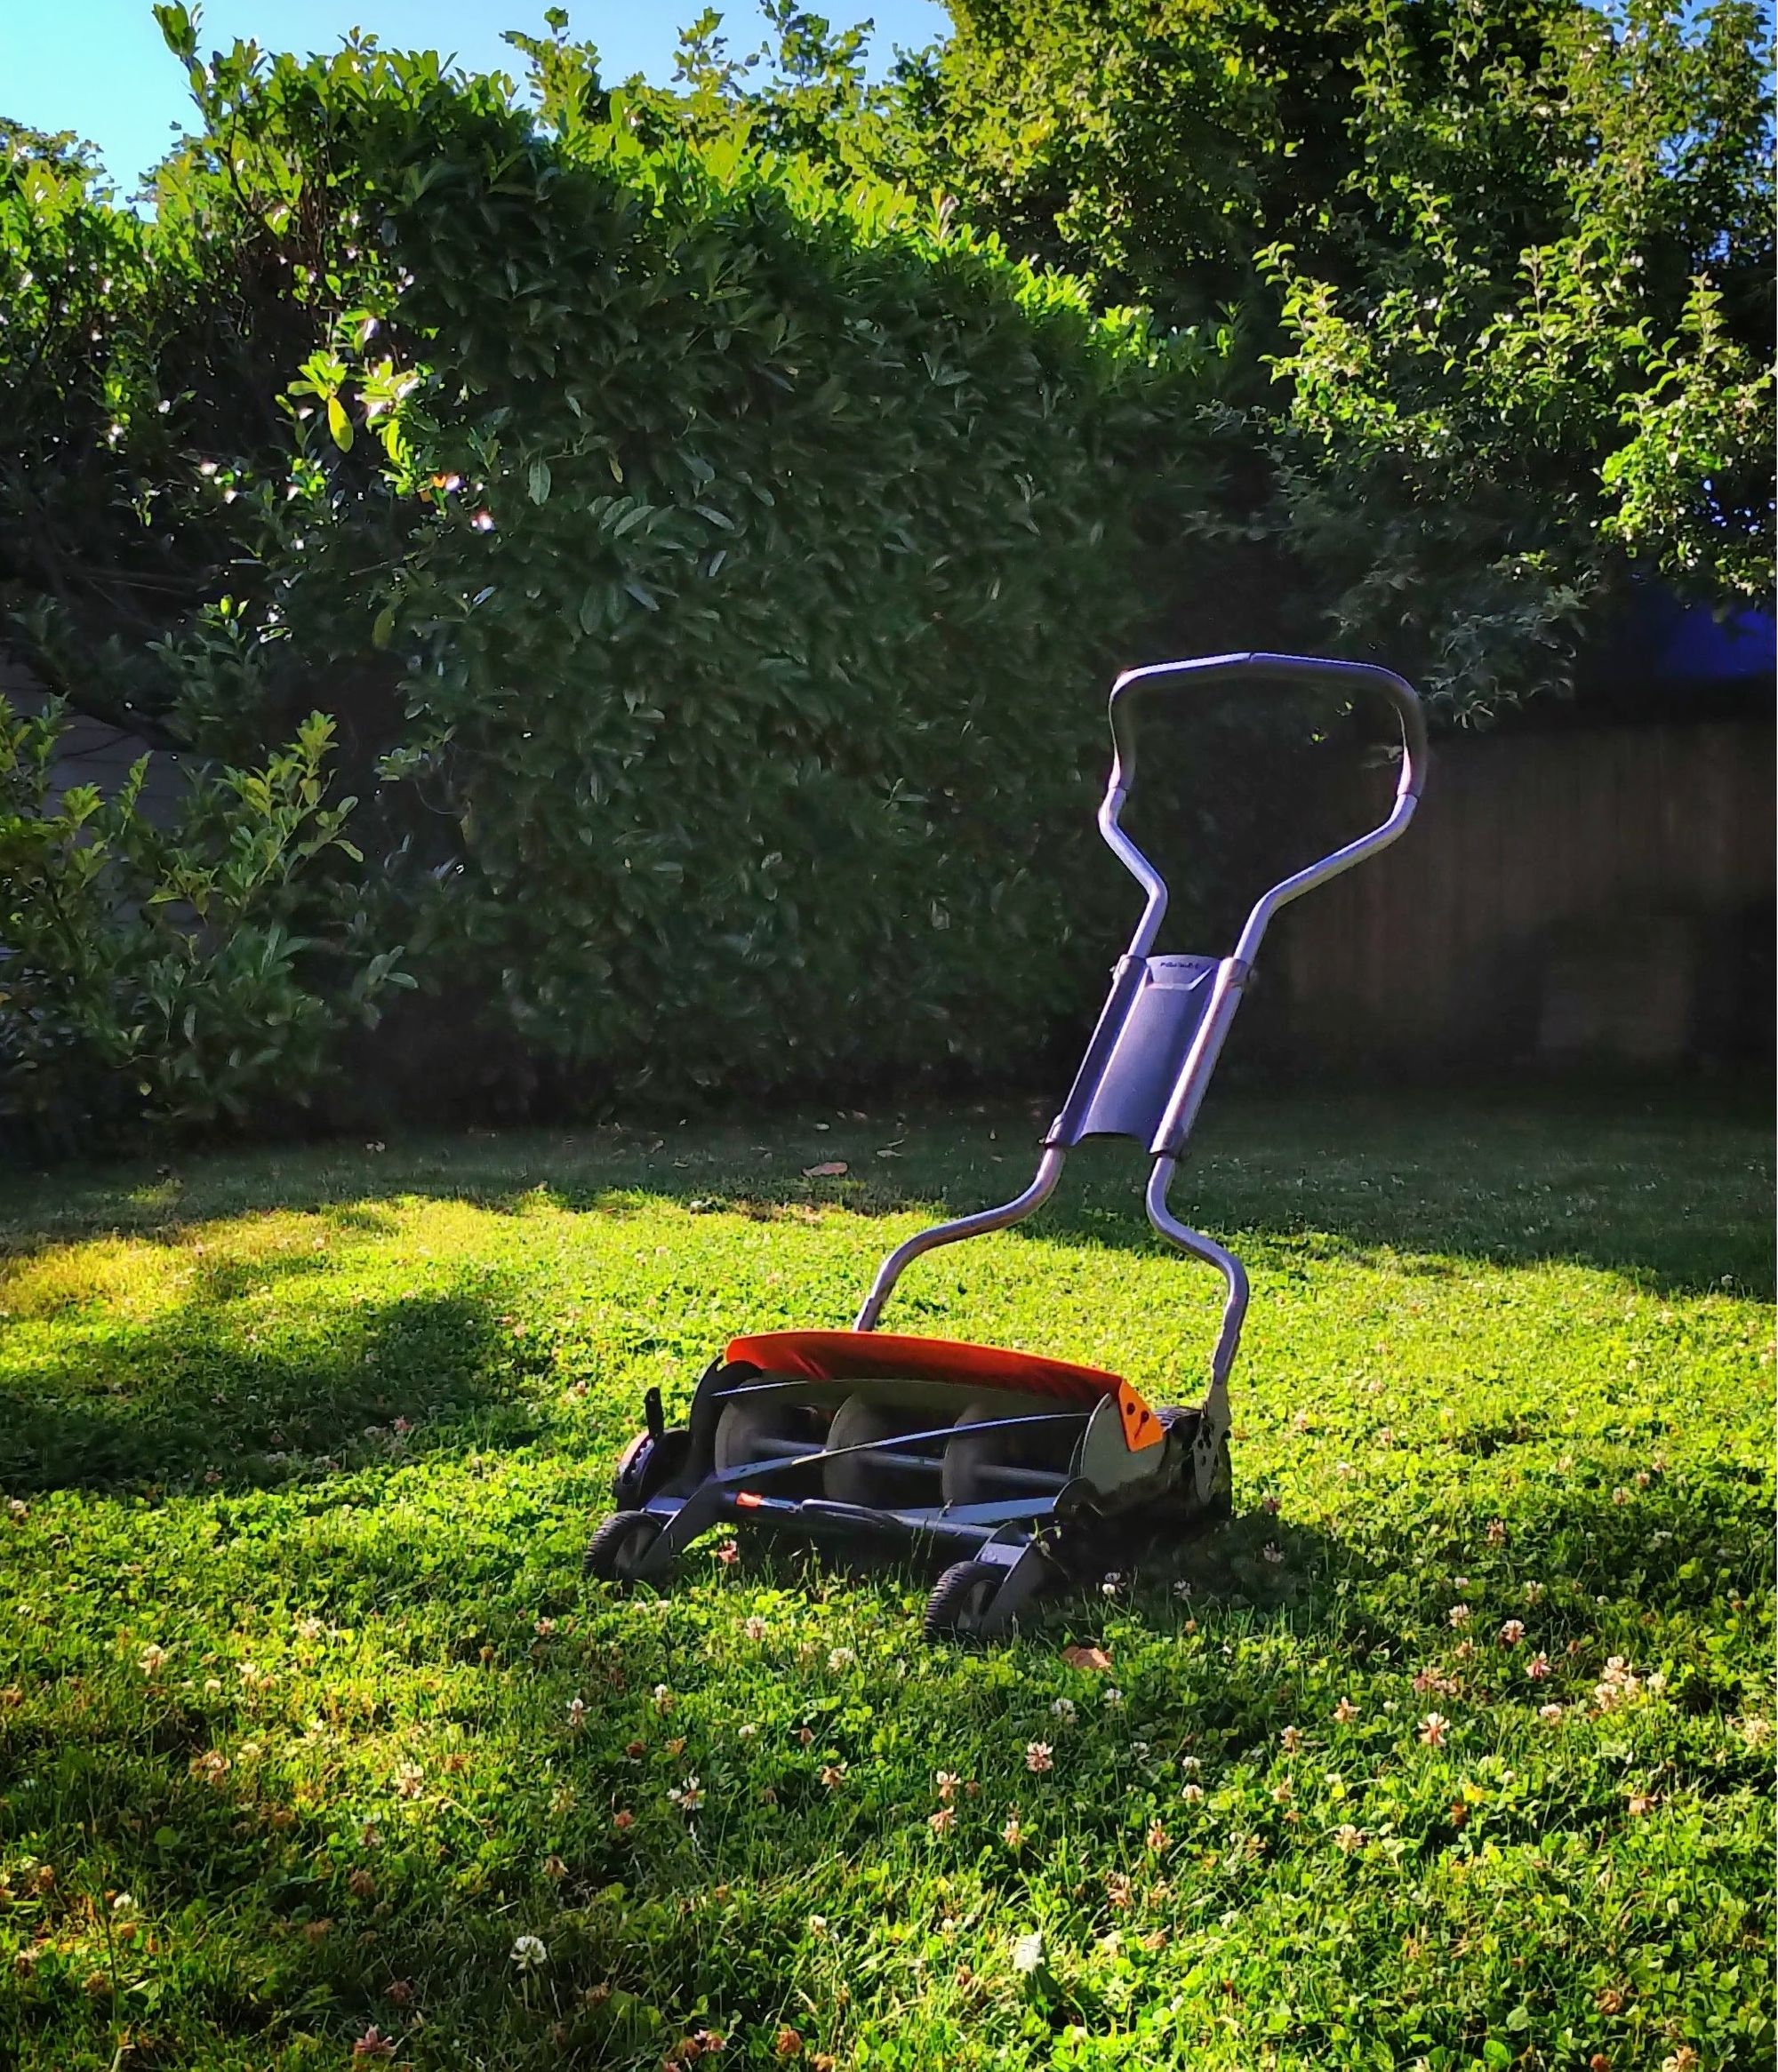 5 best reel mowers to care for your lawn